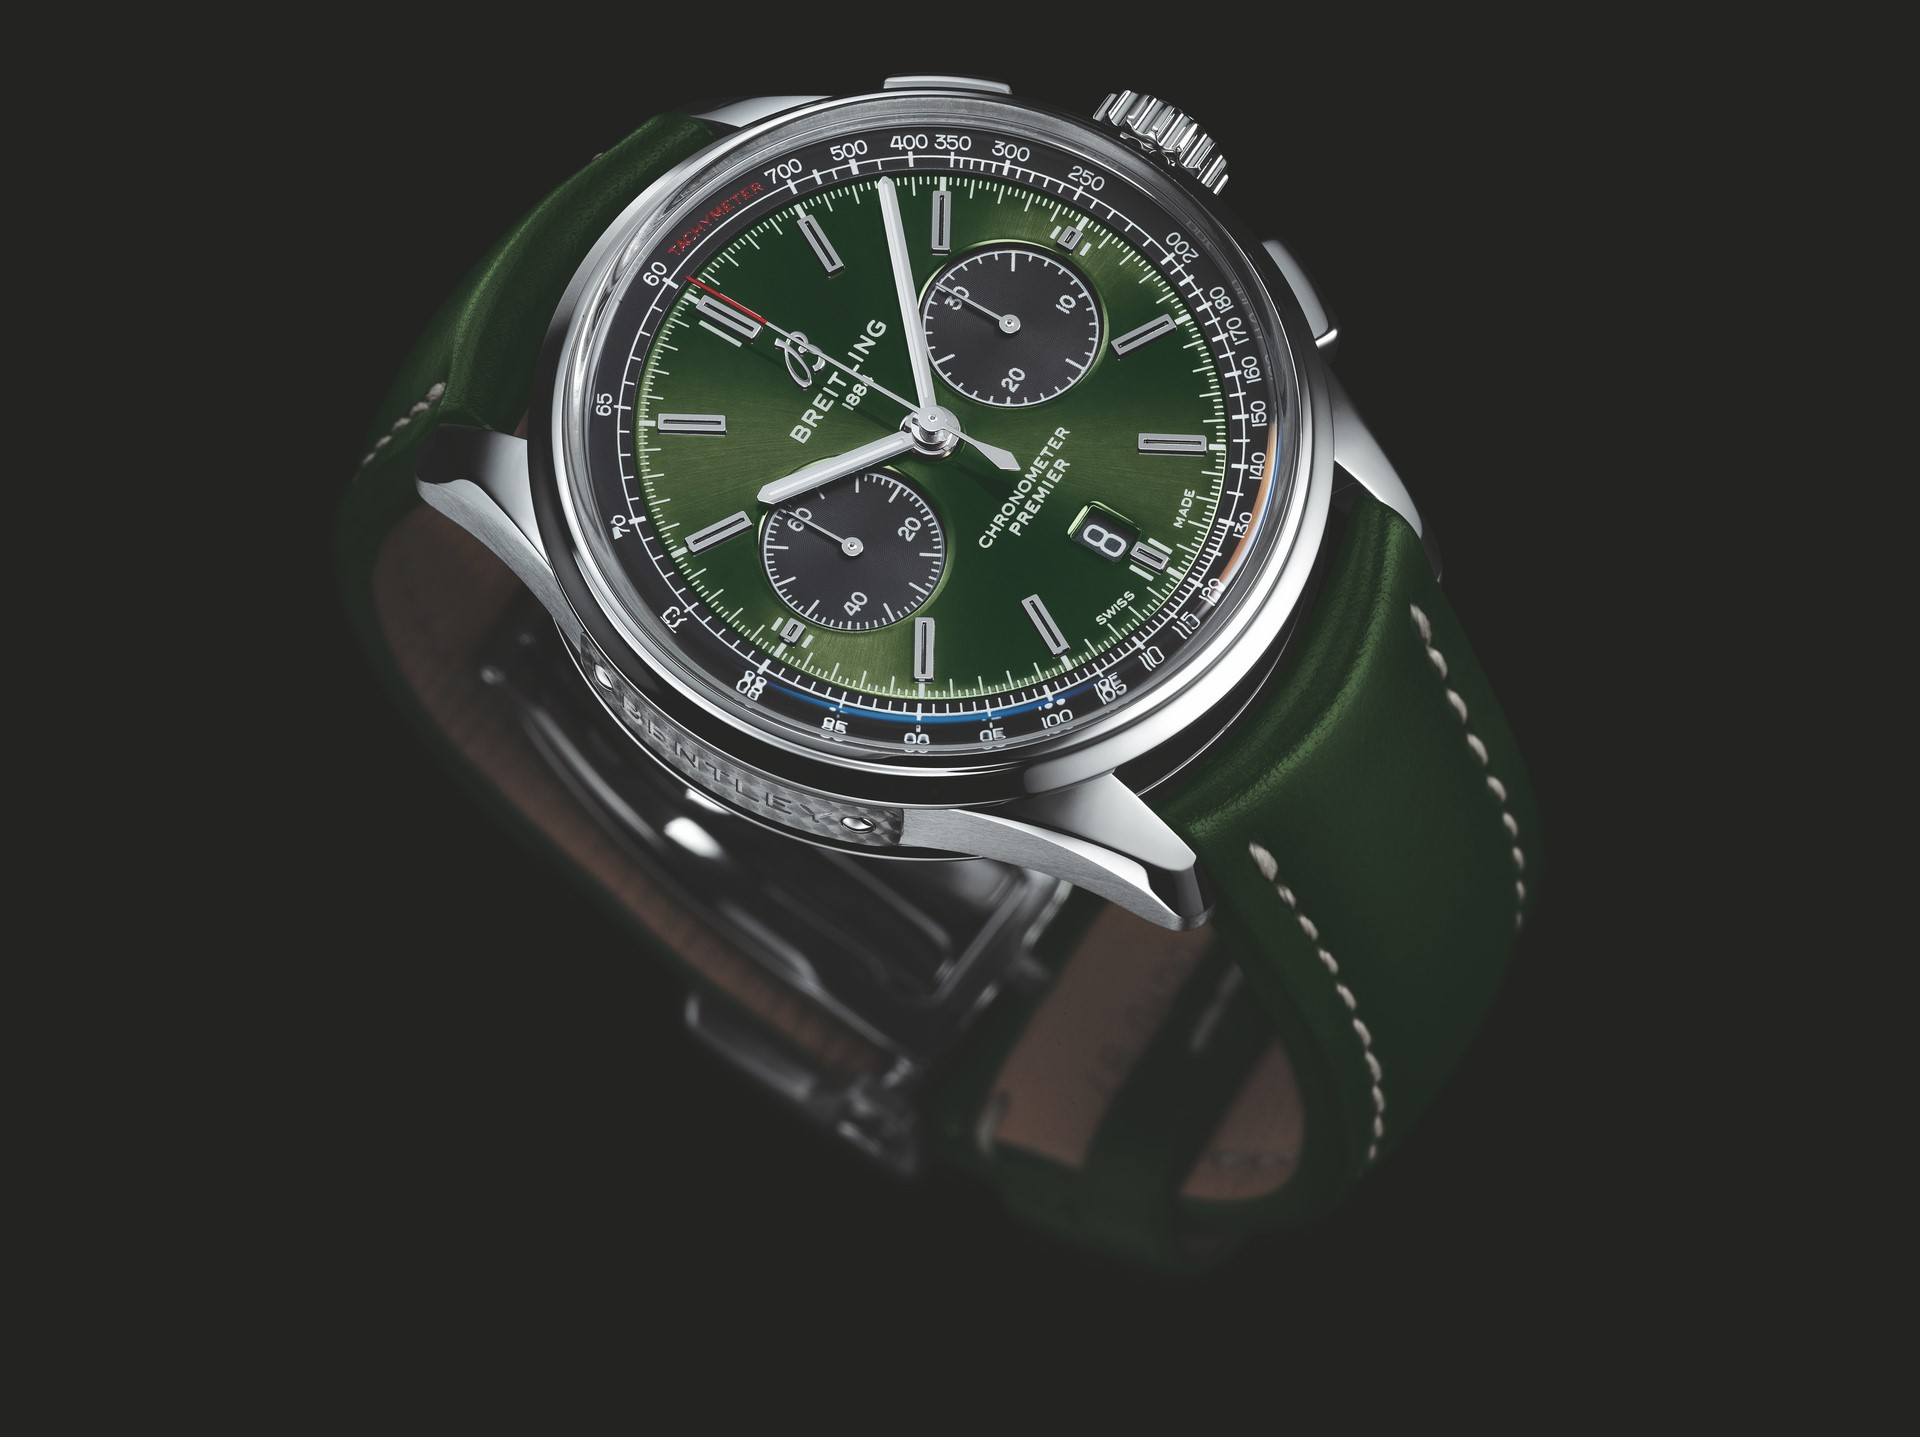 Premier B01 Chronograph 42 Bentley British Racing Green with a British racing green leather strap